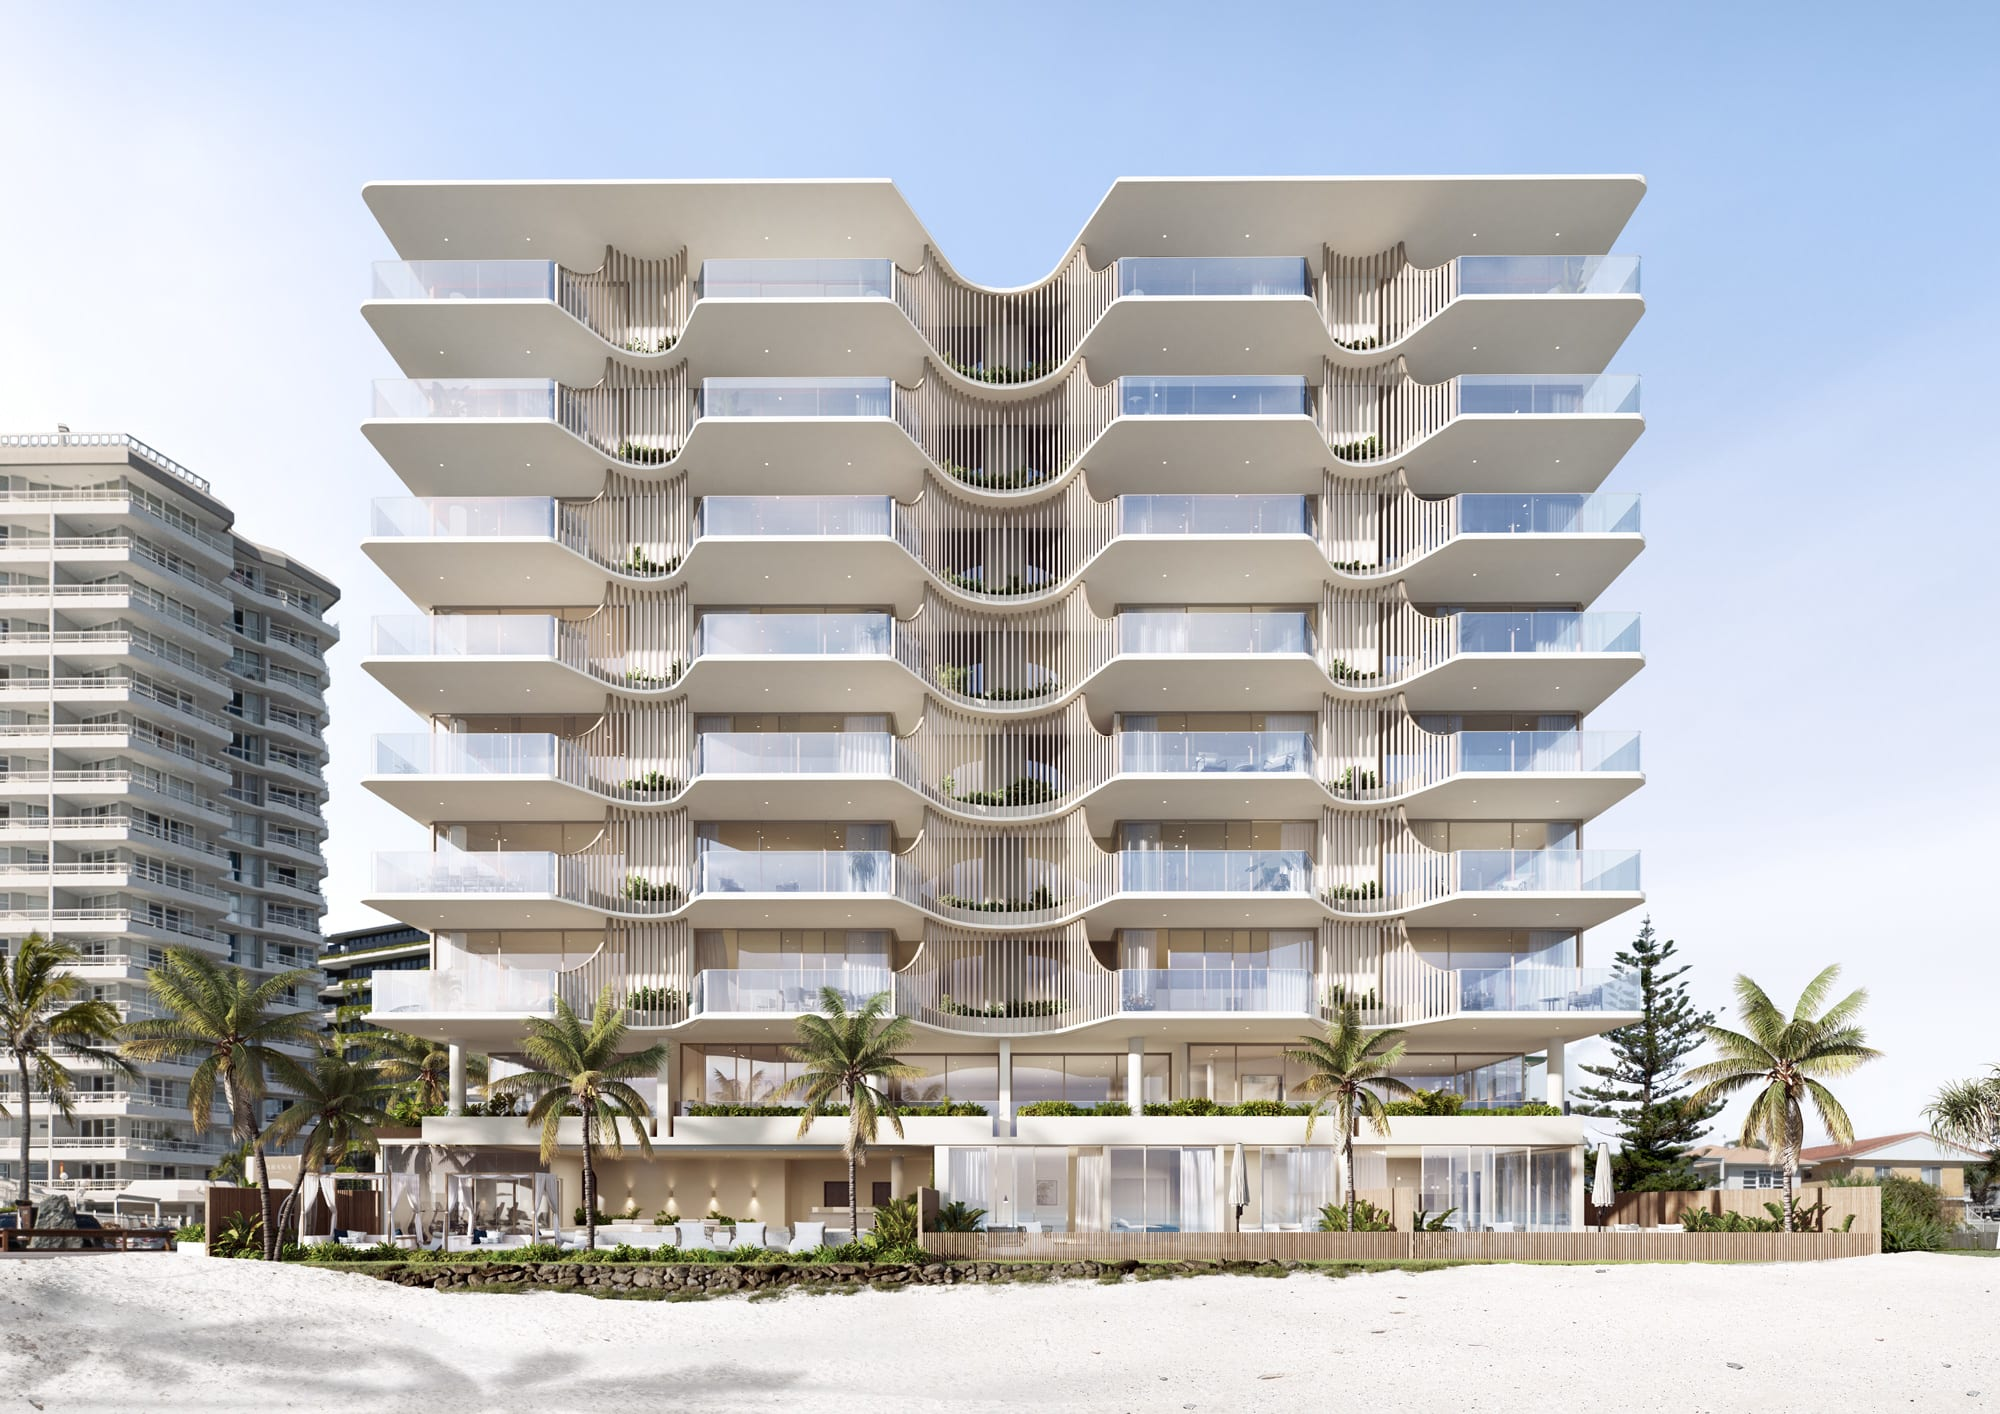 Ignite Projects sell-out Cabana Palm Beach project. Demand for New Luxury Projects on Gold Coast.